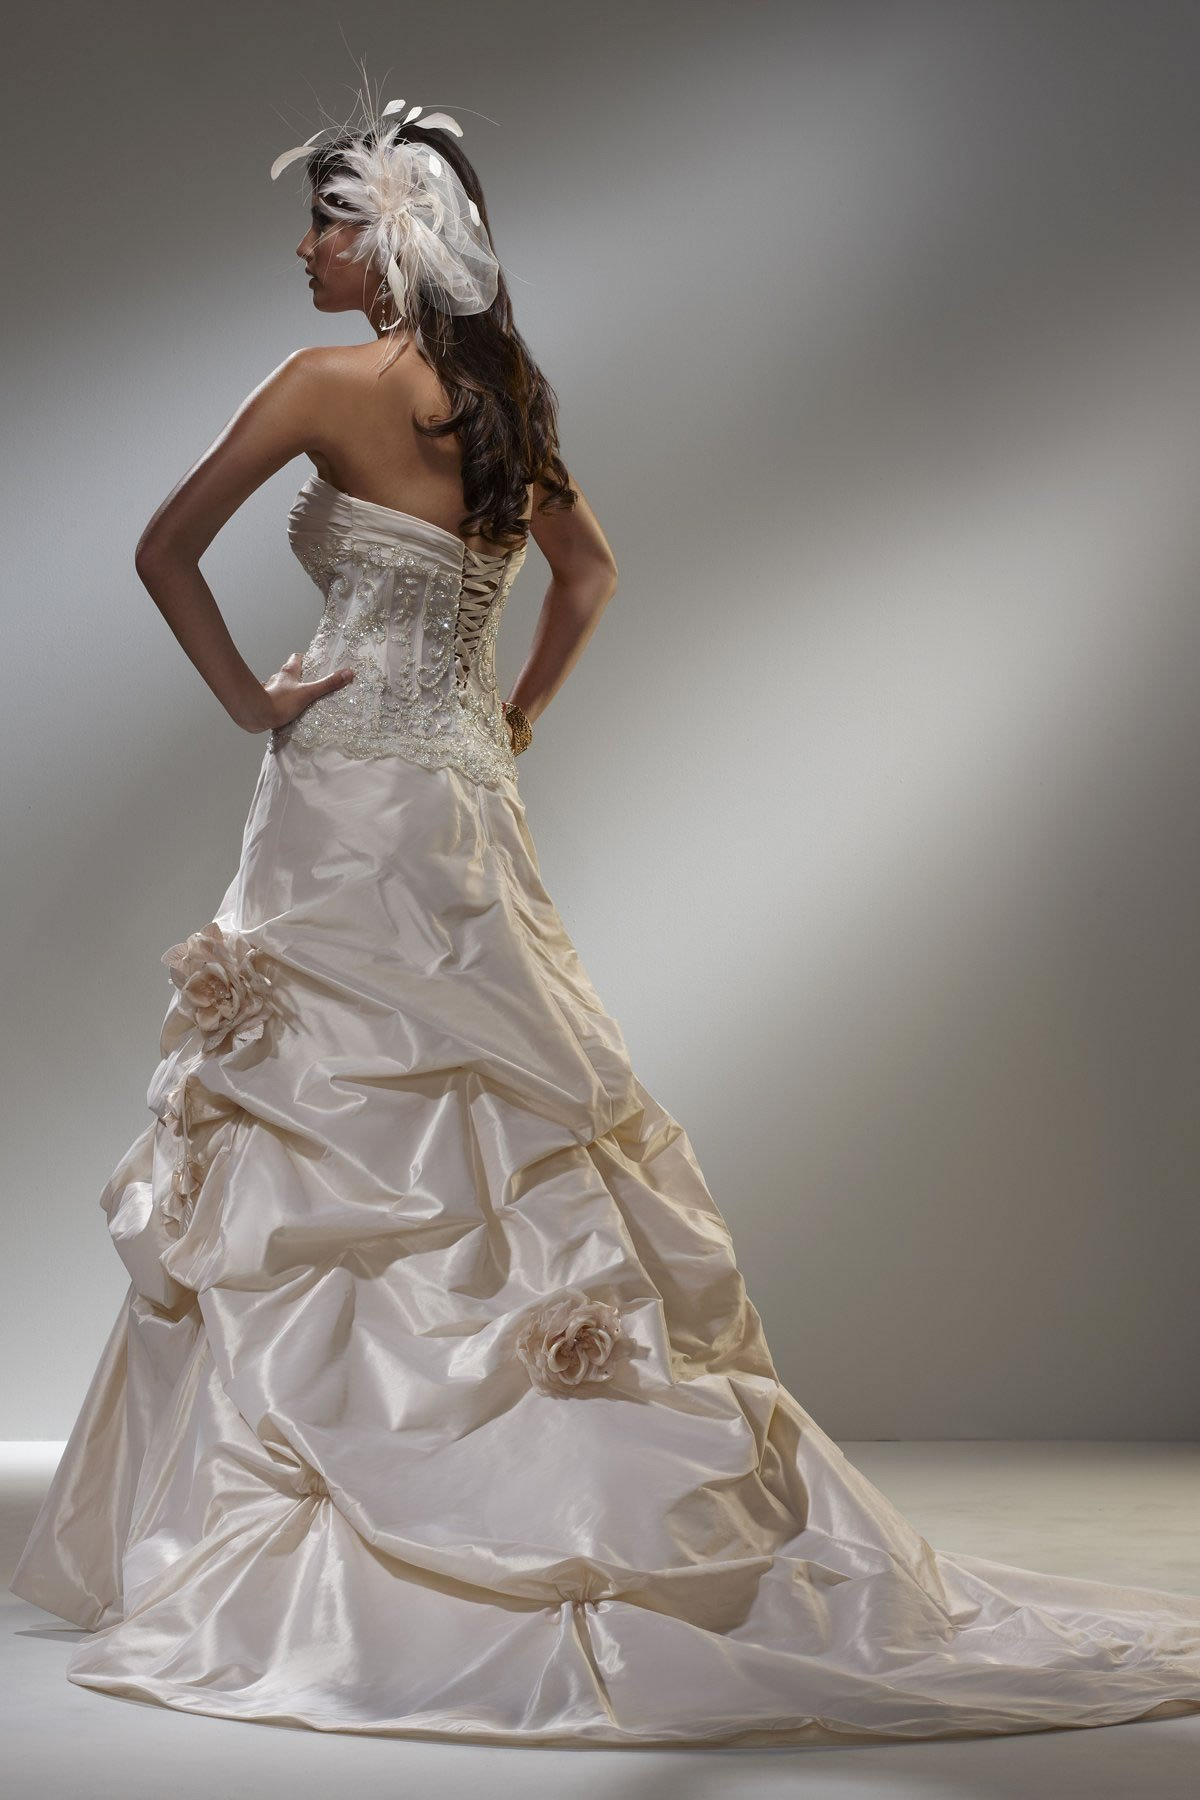 Gorgeous wedding gown featuring a sheer from for Sheer bodice wedding dress